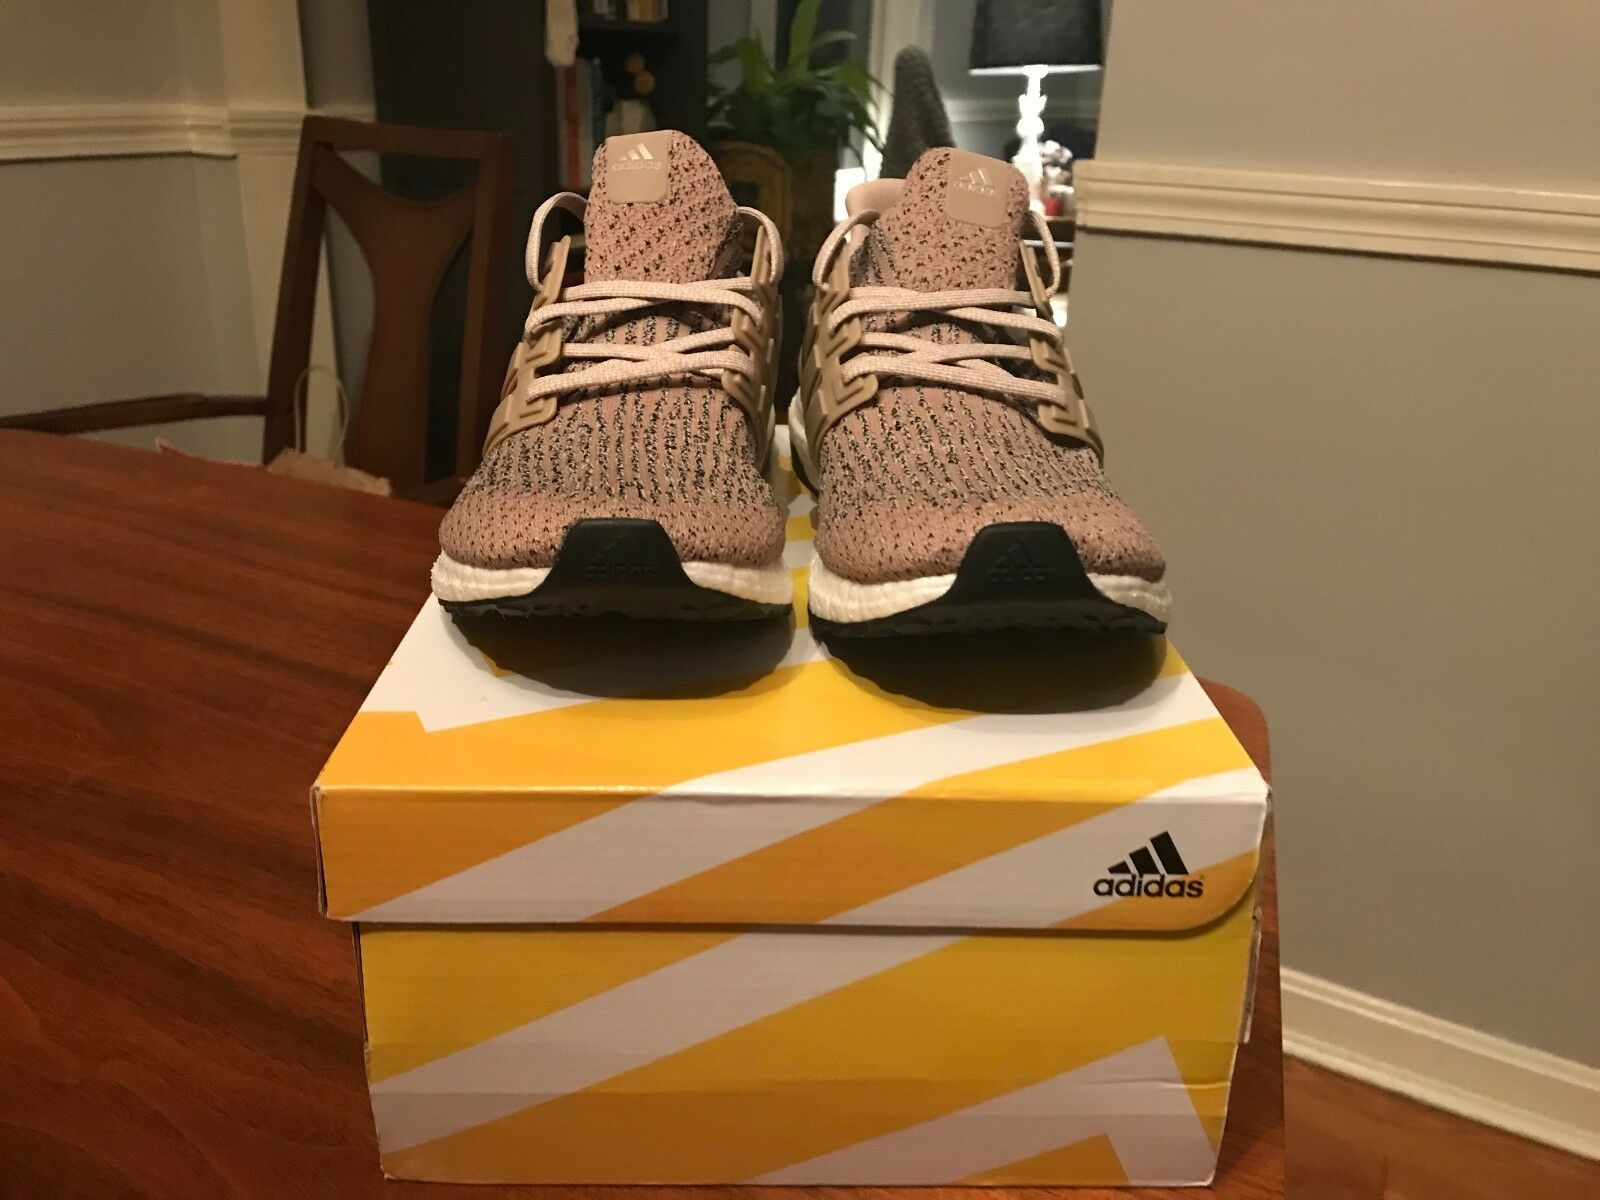 Adidas Ultra Boost 3.0 Trace Khaki Sneakers Size 9.5 US Mens